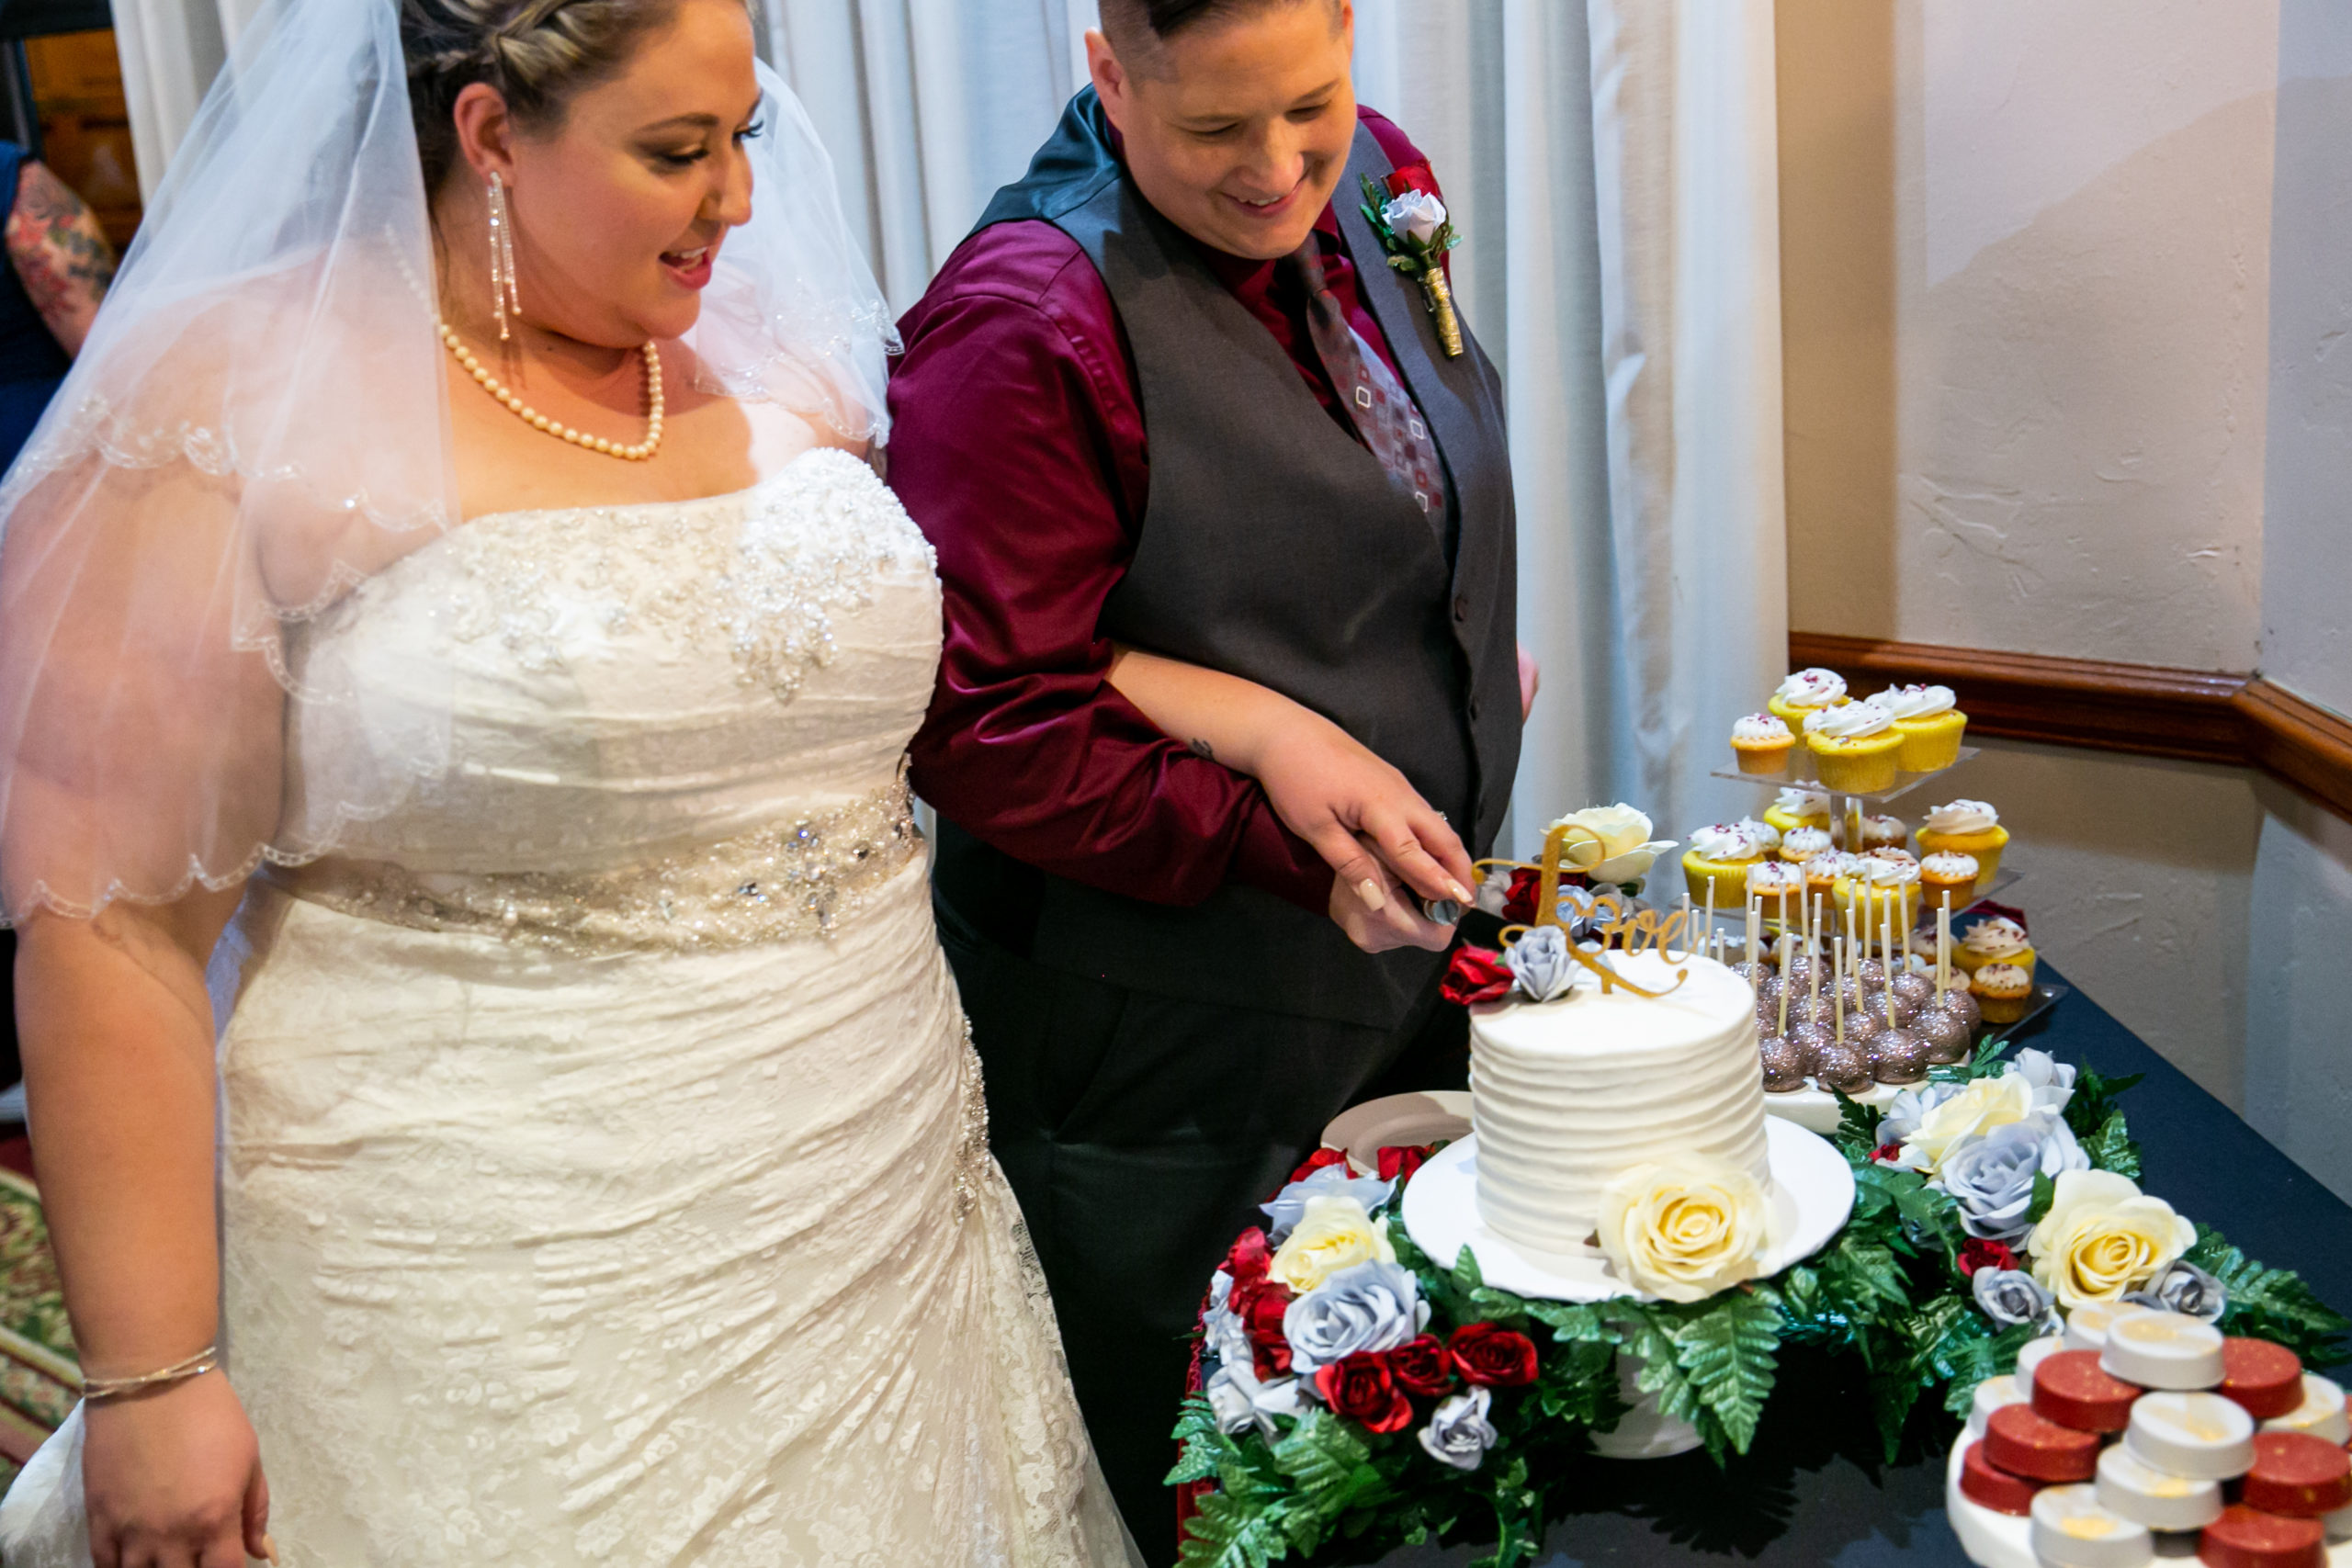 two brides cutting wedding cake